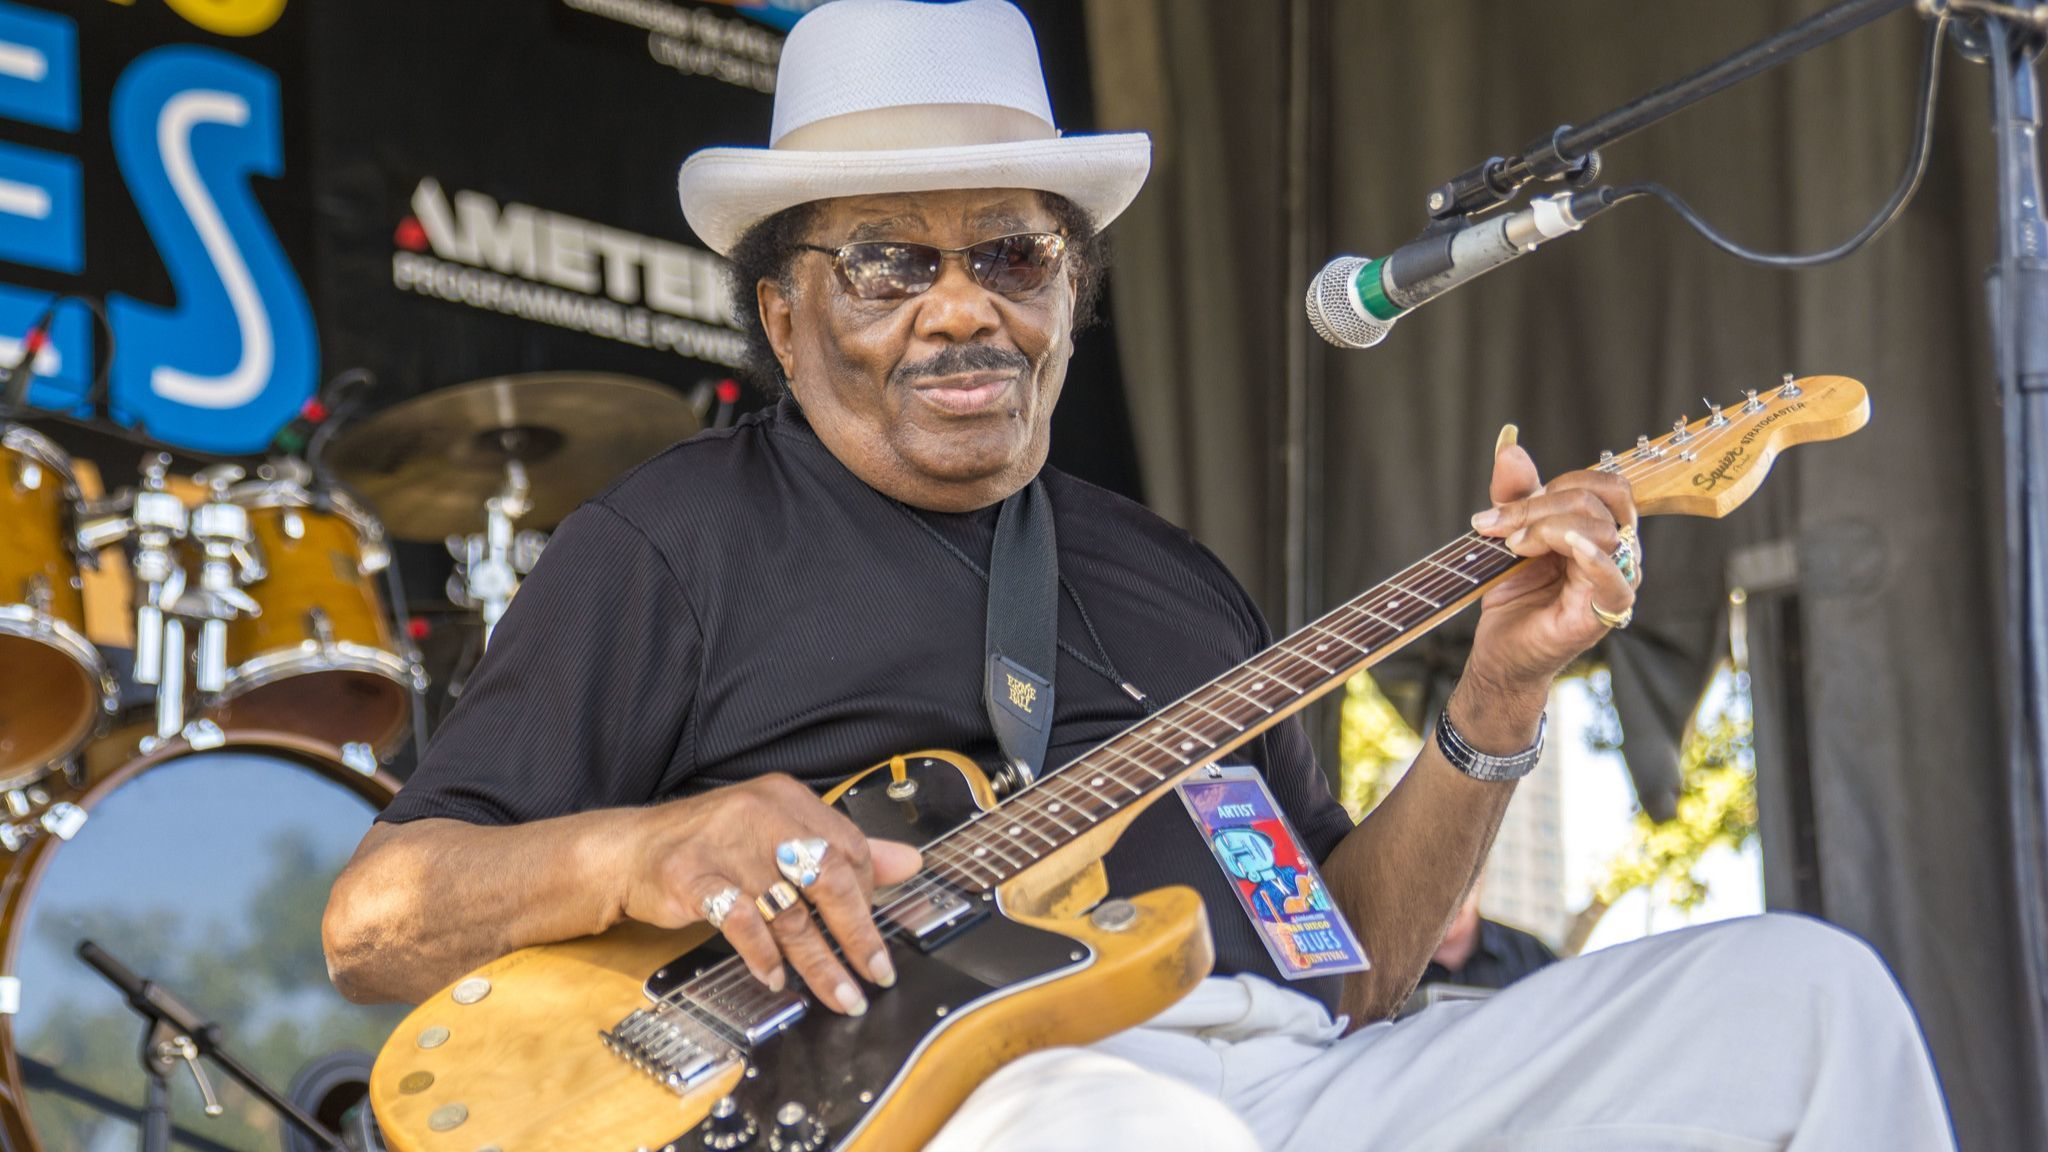 As Tomcat Courtney, San Diego's 'godfather of the blues,' nears his 90th birthday, a community celebrates his accomplishments